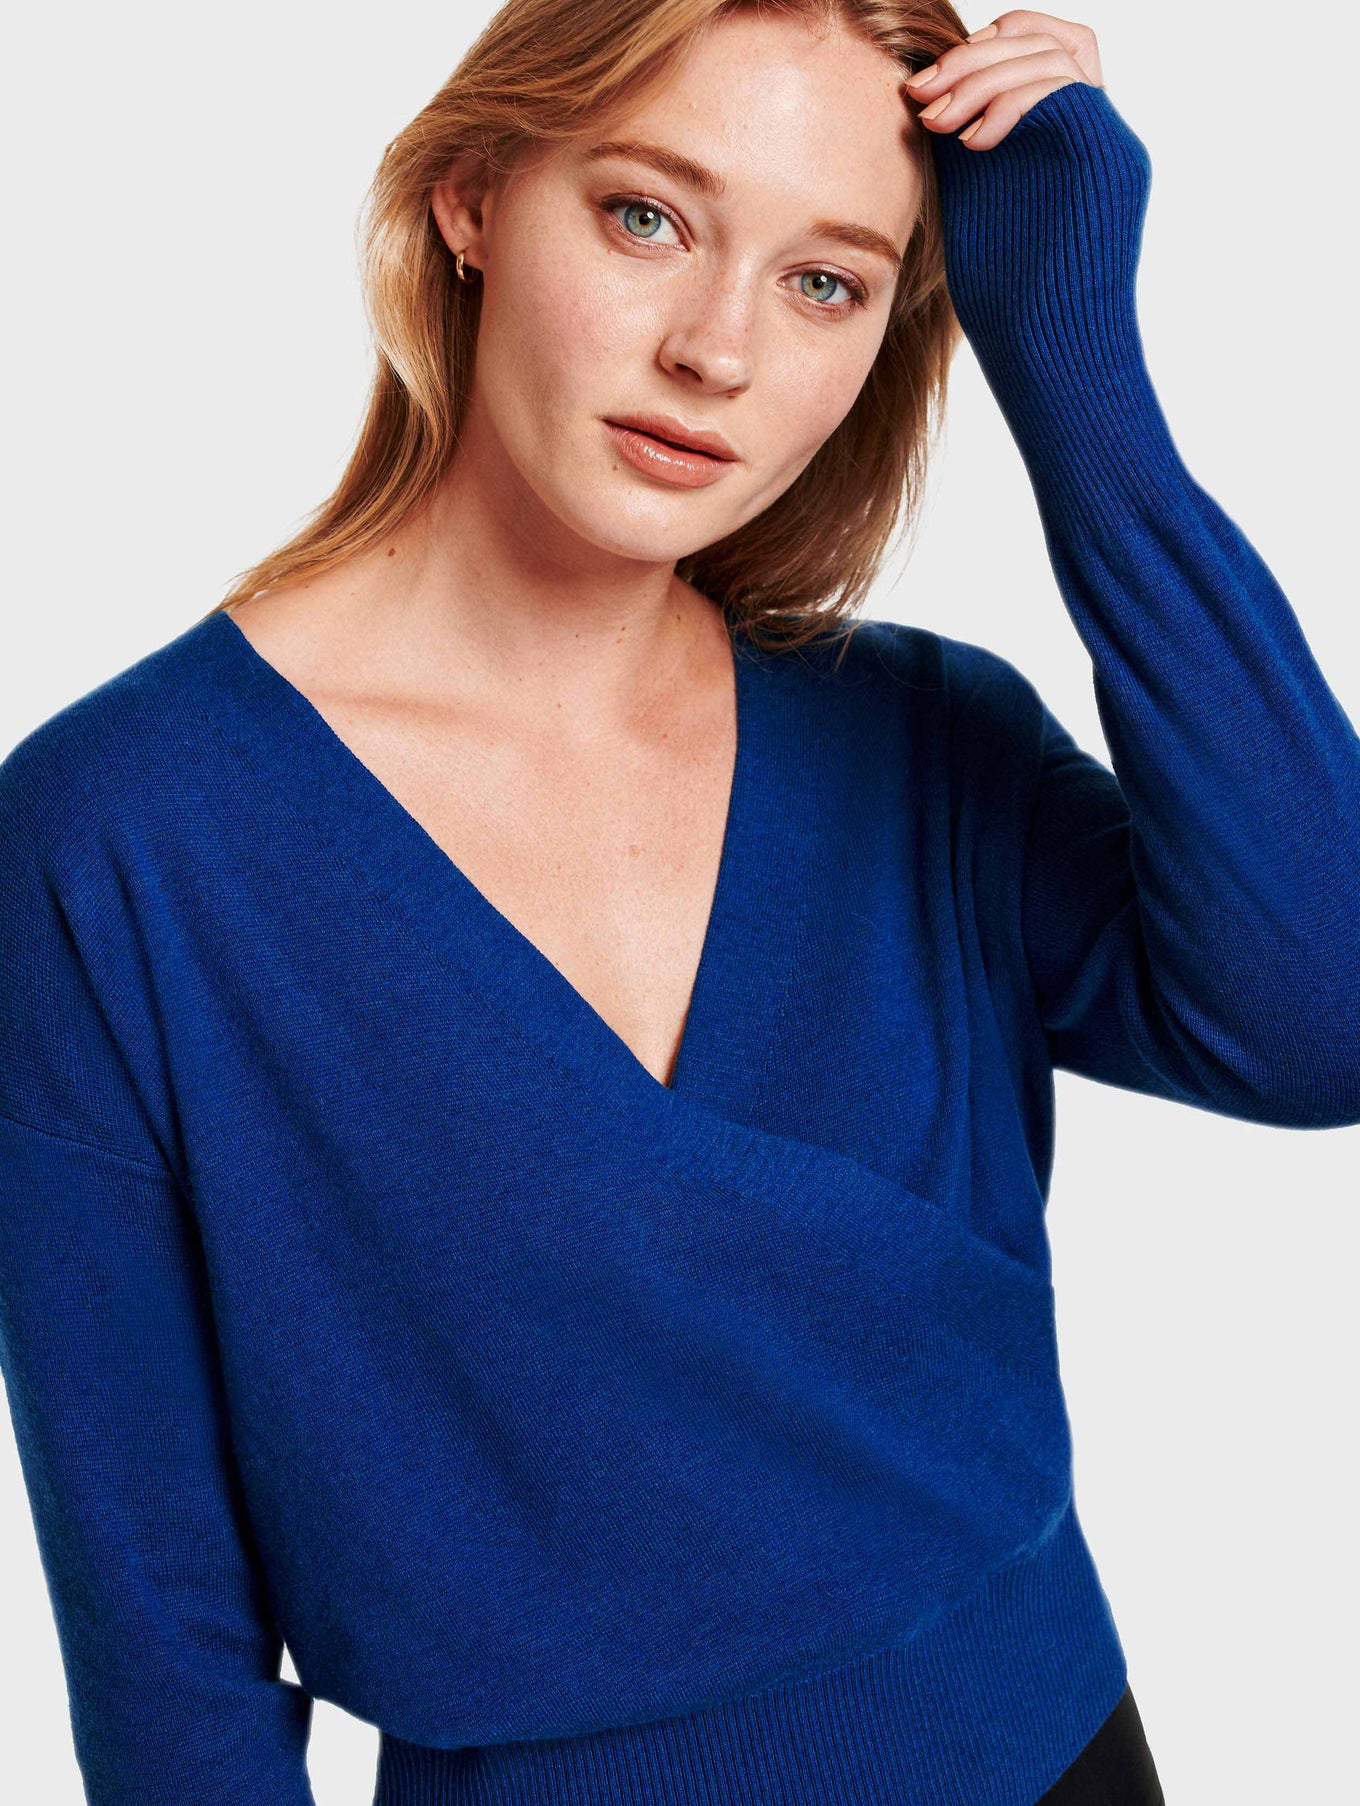 Faux Wrap Pullover - Nightfall Heather - Image 1